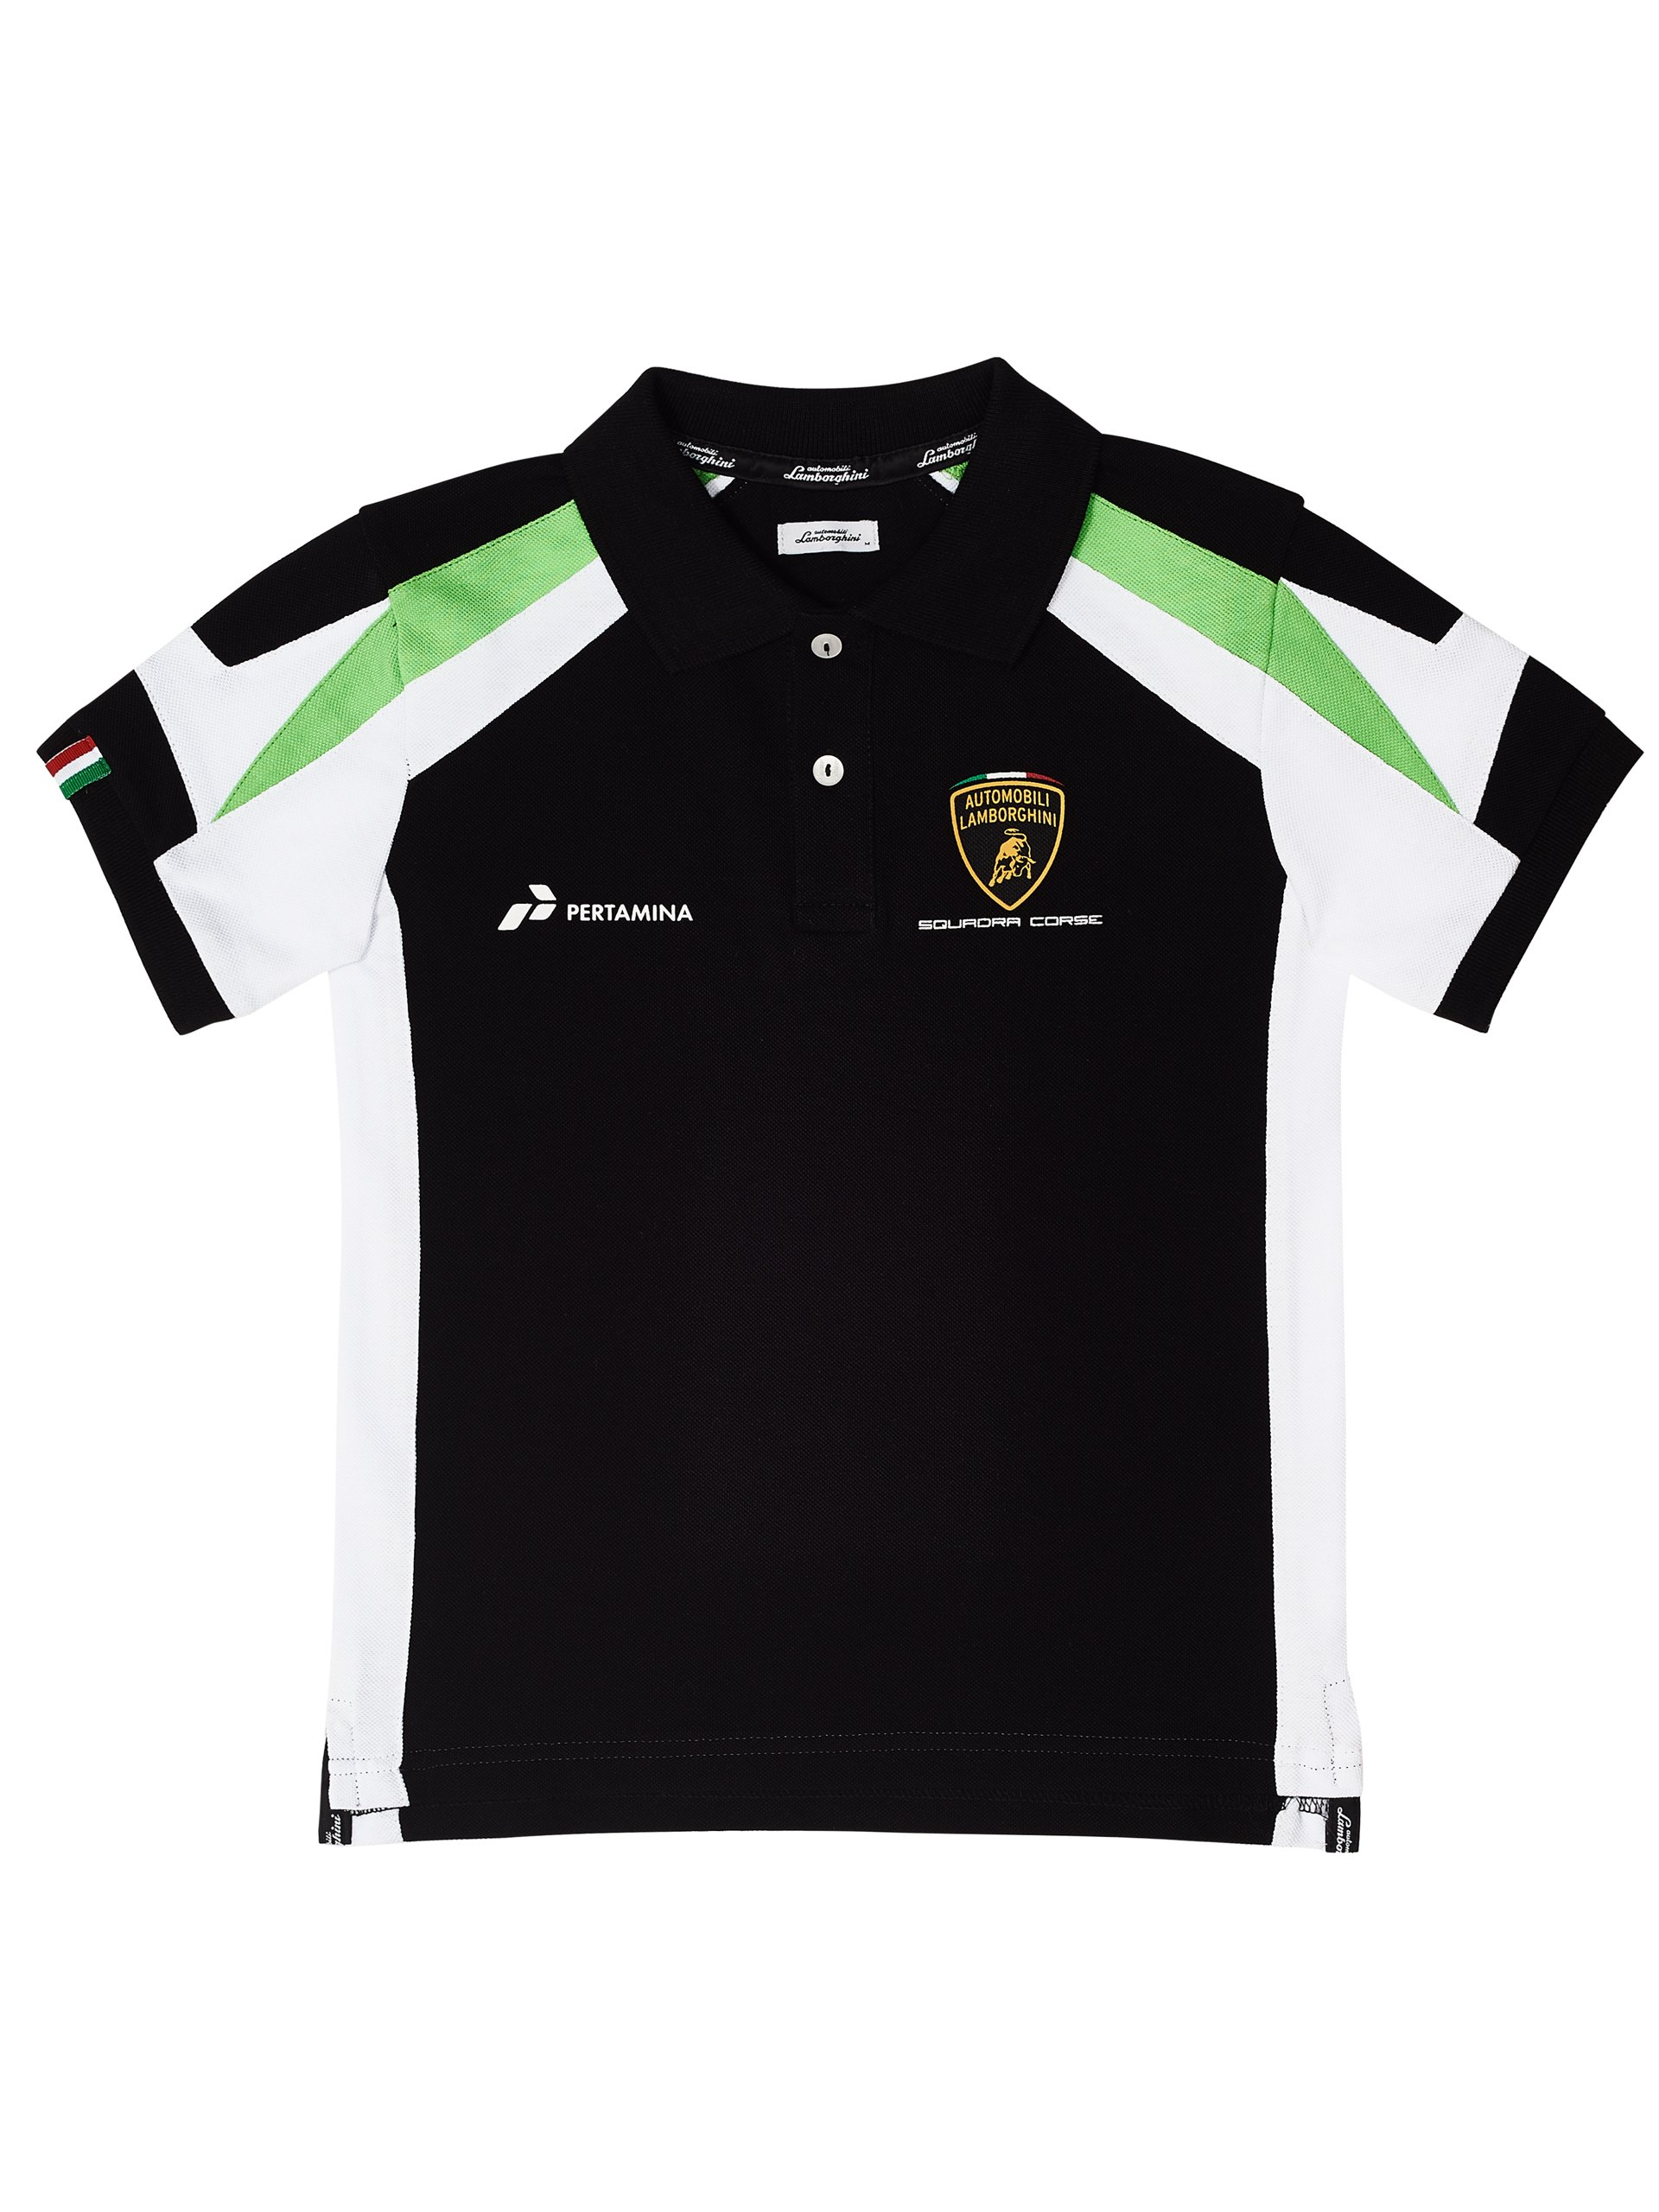 Automobili Lamborghini Children Sq. Corse Lamborghini Boy's Polo Shirt 7-8 Y Black by Automobili Lamborghini